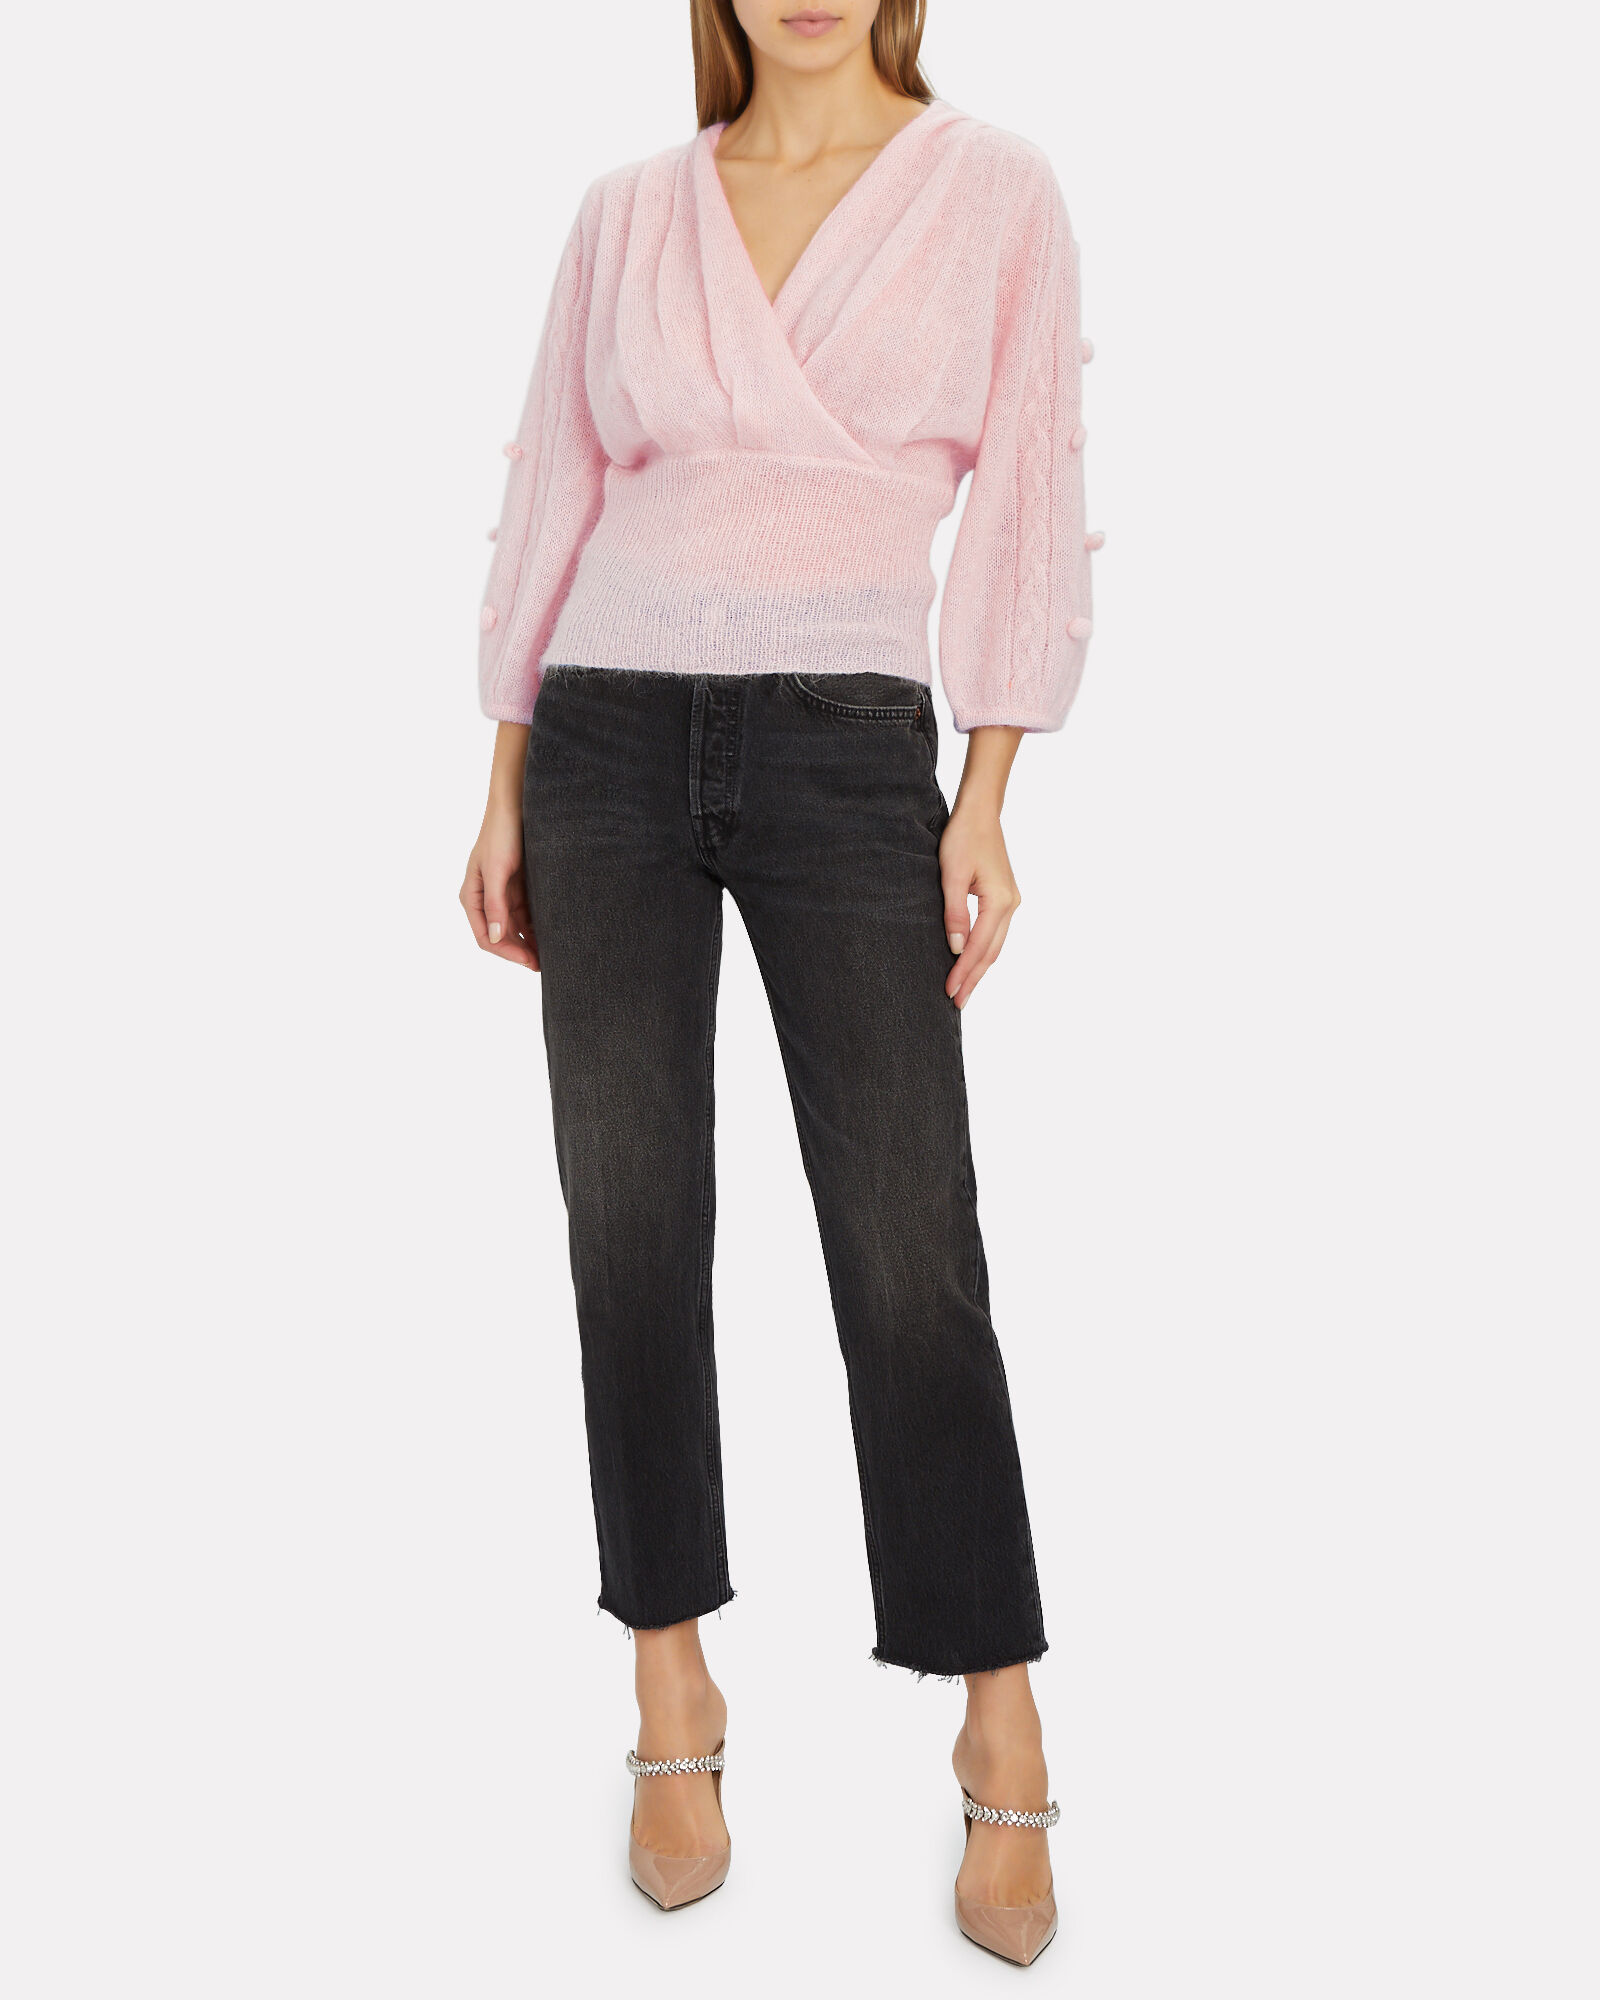 Jayla Mohair Wrap Sweater, PINK, hi-res